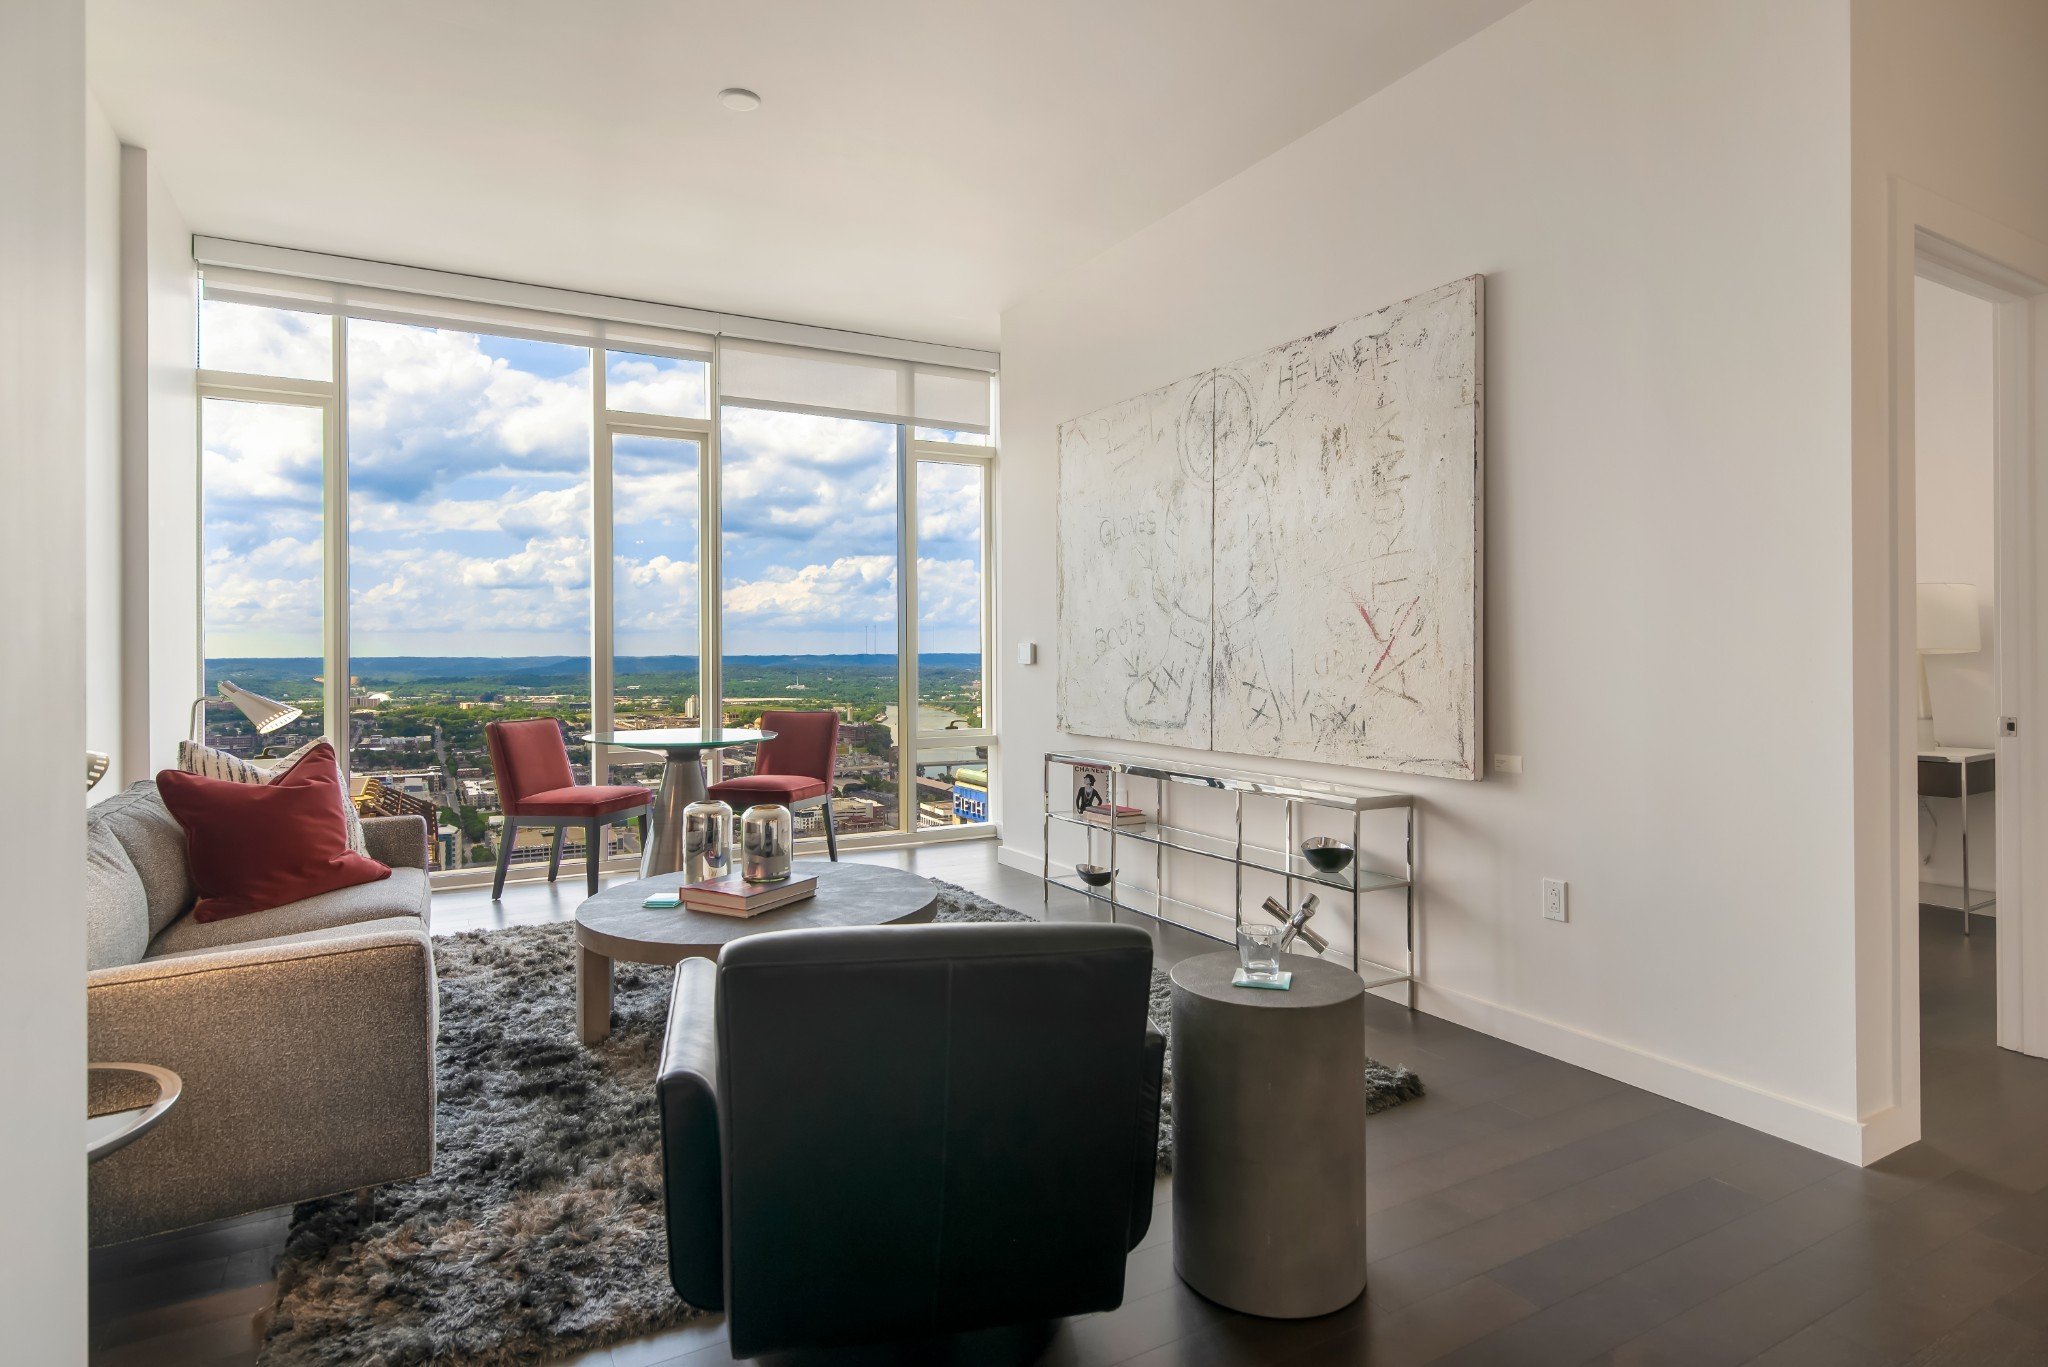 Modern elegance and timeless sophistication at the unparalleled 505 high-rise. Beautifully appointed 2-BR with breathtaking wall-to-wall views of Nashville's iconic skyline and distant hilltops. Resort-style pool, cabanas, tennis, Technogym fitness center, dog park. Exclusive owners-only wine cellar, lounge, dining room with catering kitchen and fitness. Located in the epicenter of all downtown activities. Walk to music, theater, sports and restaurants.